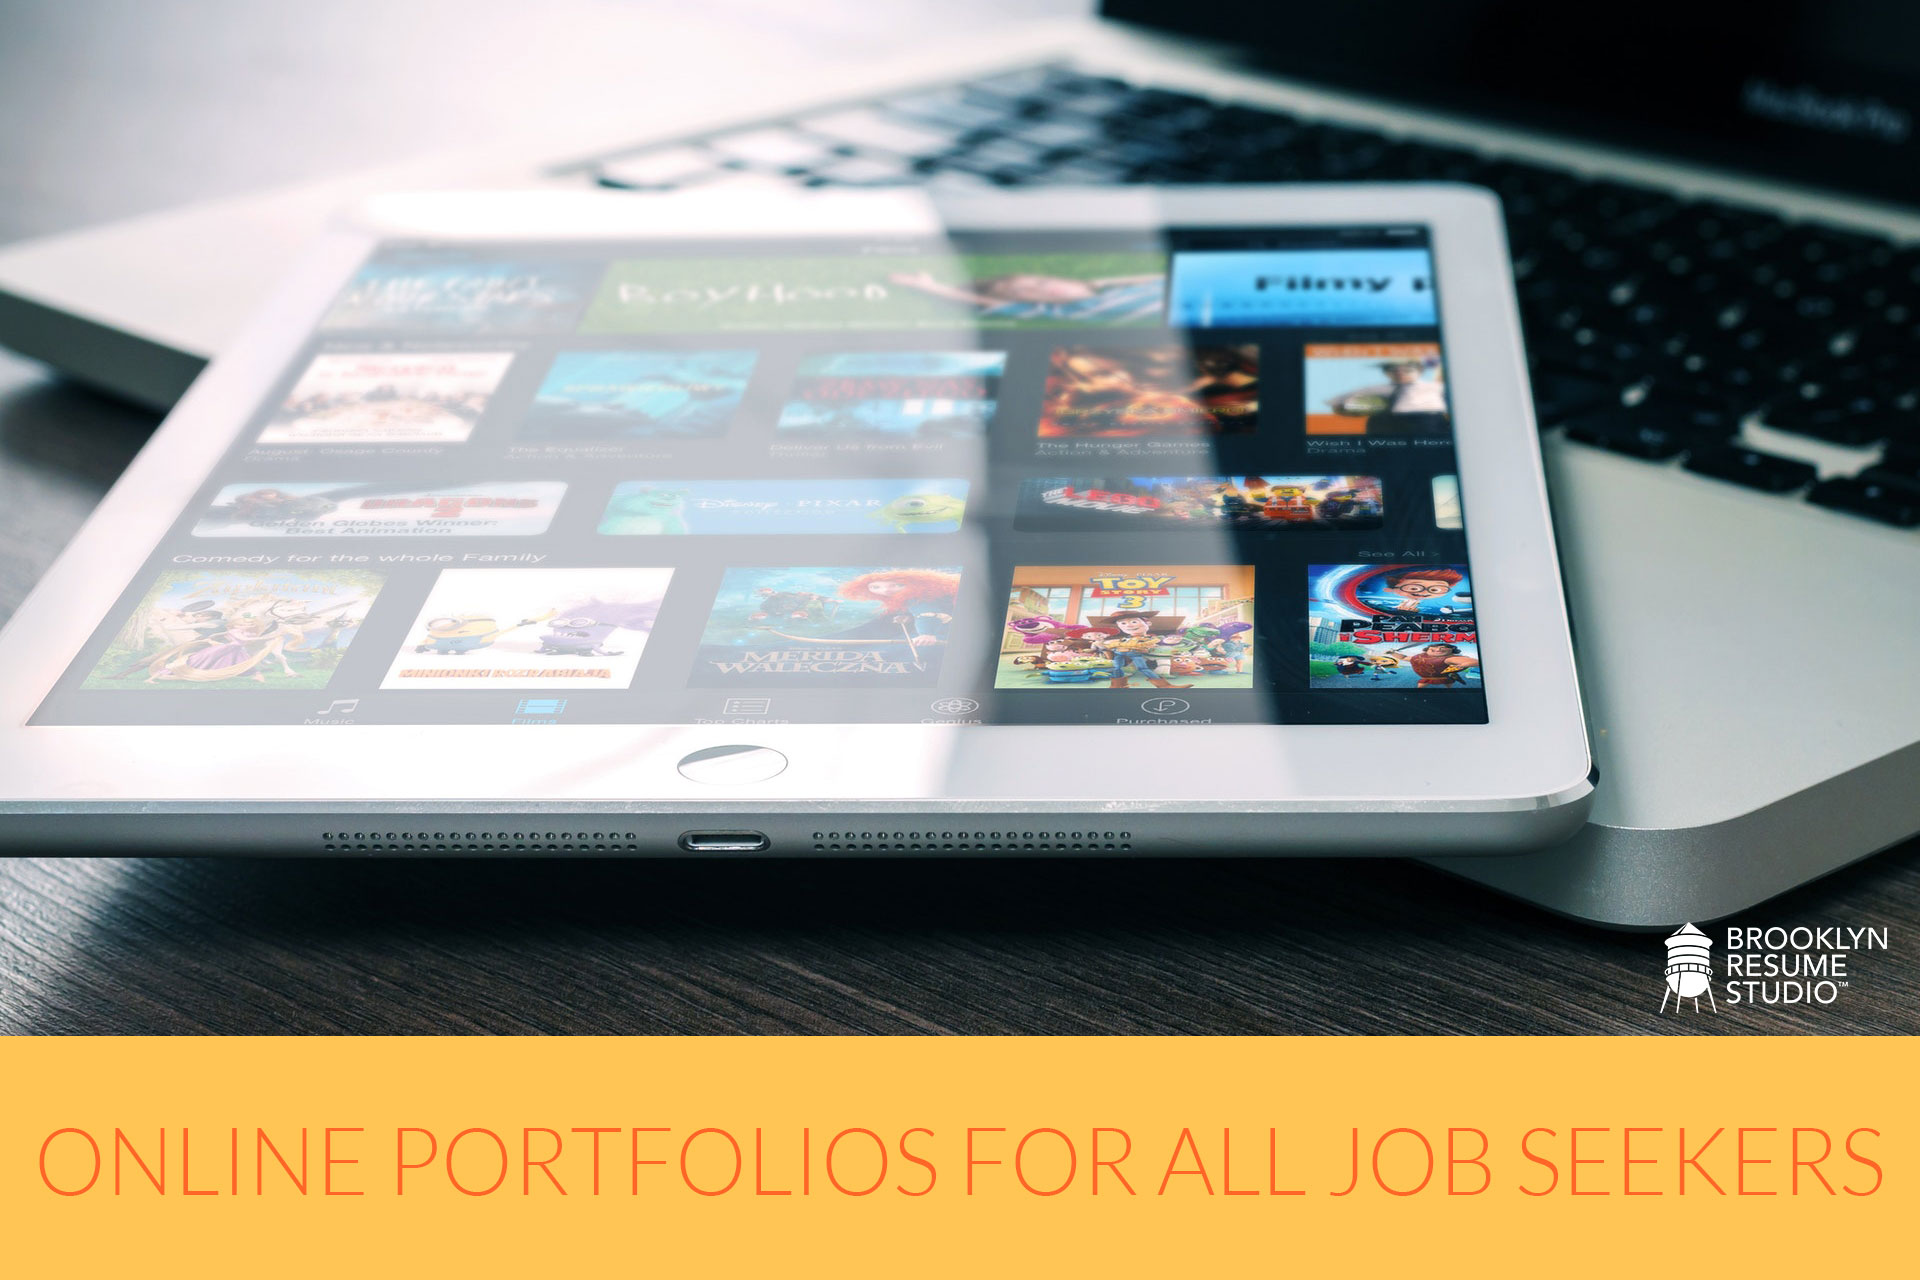 digital portfolios for any job seeker brooklyn resume studio portfolio can help social Resume Digital Resume Portfolio